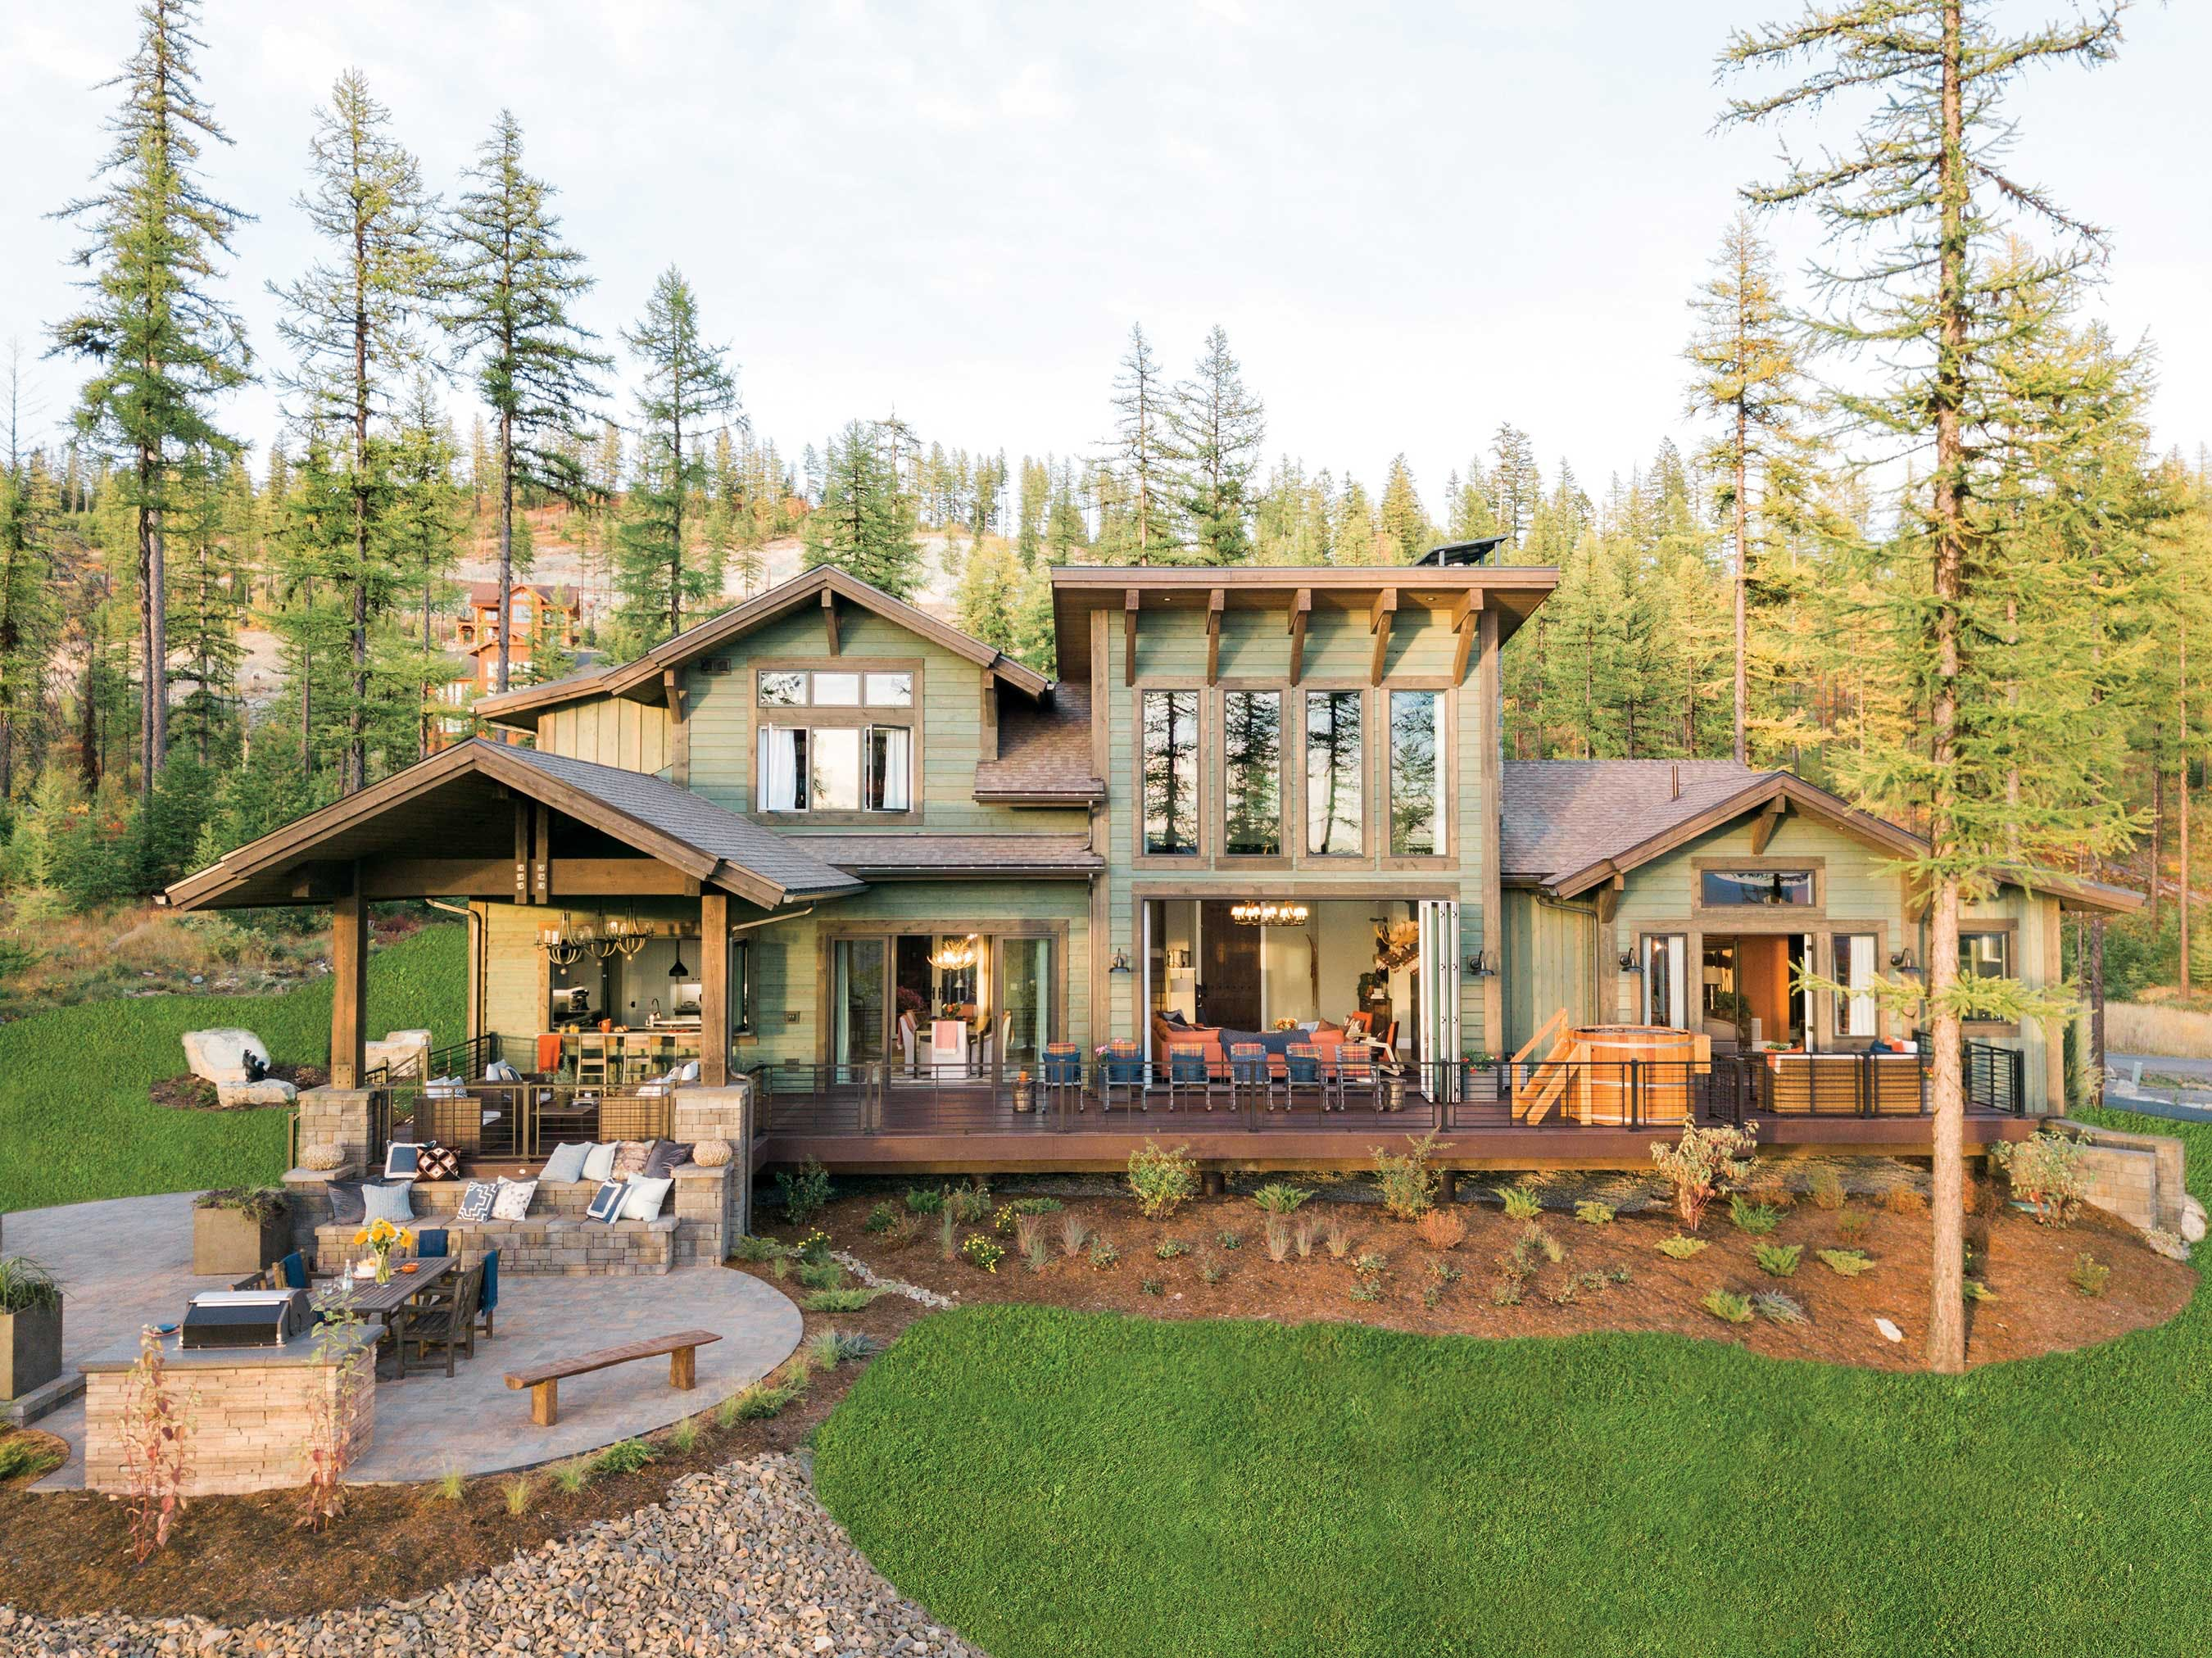 The HGTV Dream Home 2019 Is Here, and You Have to See the Modern Mountain Escape